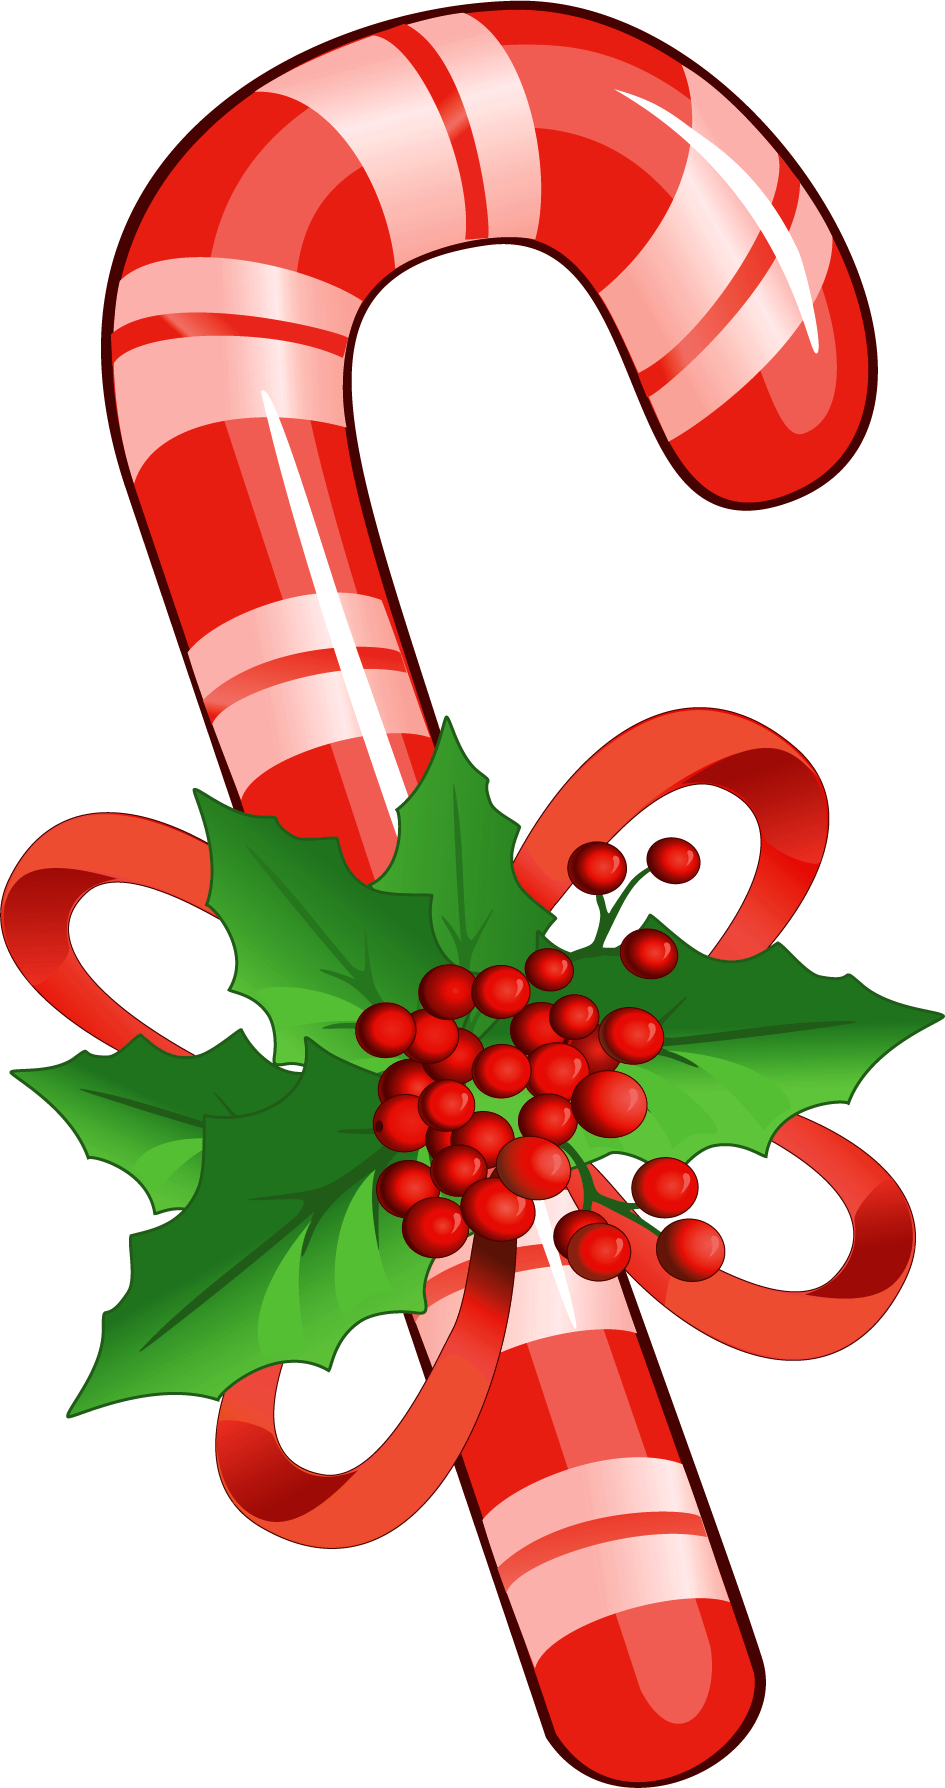 Candy Cane Clipart-Candy cane clipart-6